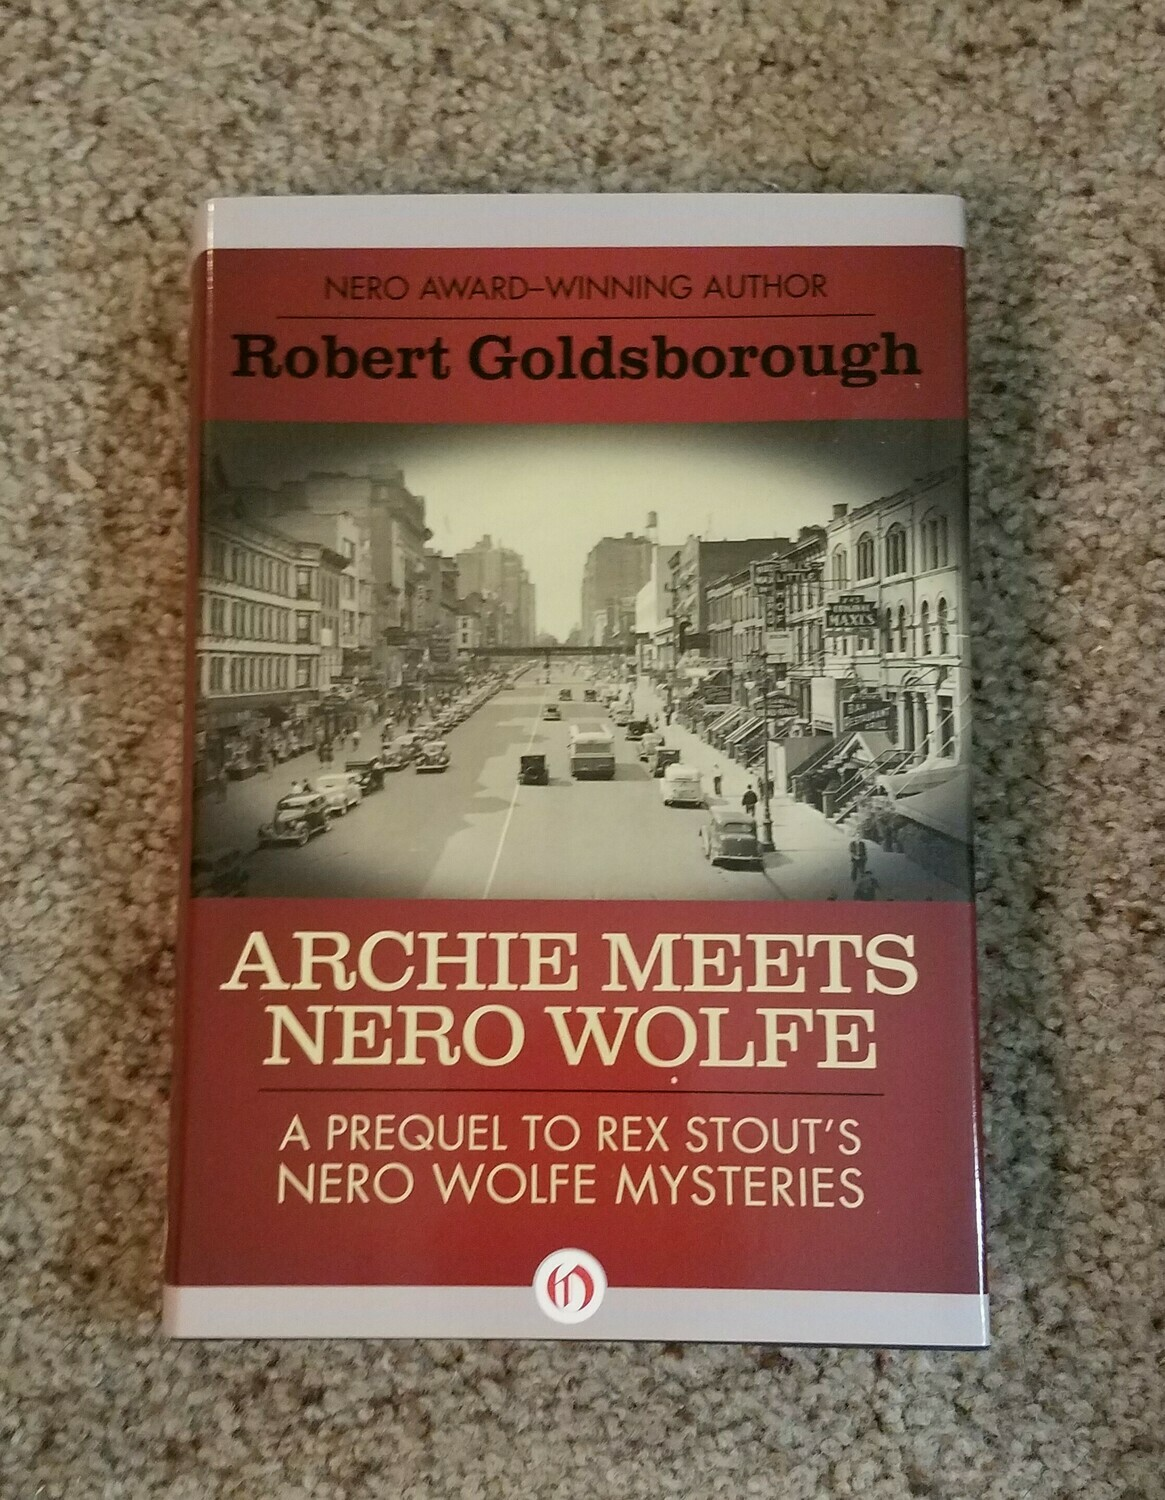 Archie meets Nero Wolfe by Robert Goldsborough